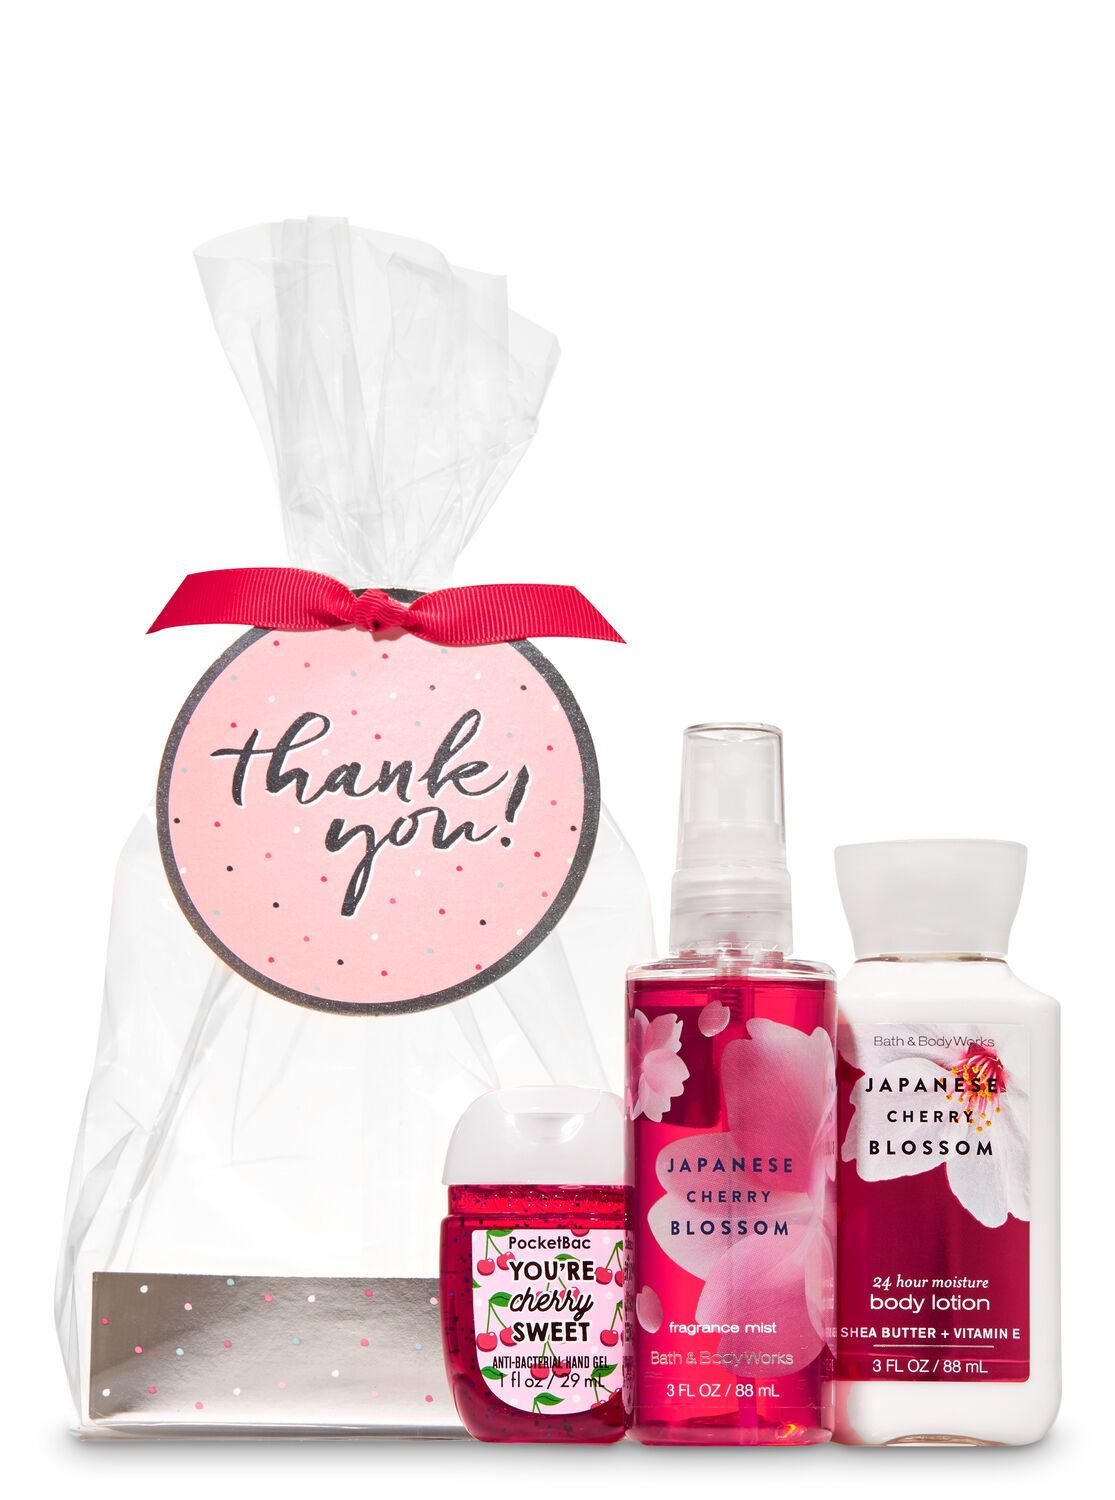 Bath Body Works Japanese Cherry Blossom Thank You Mini Gift Set